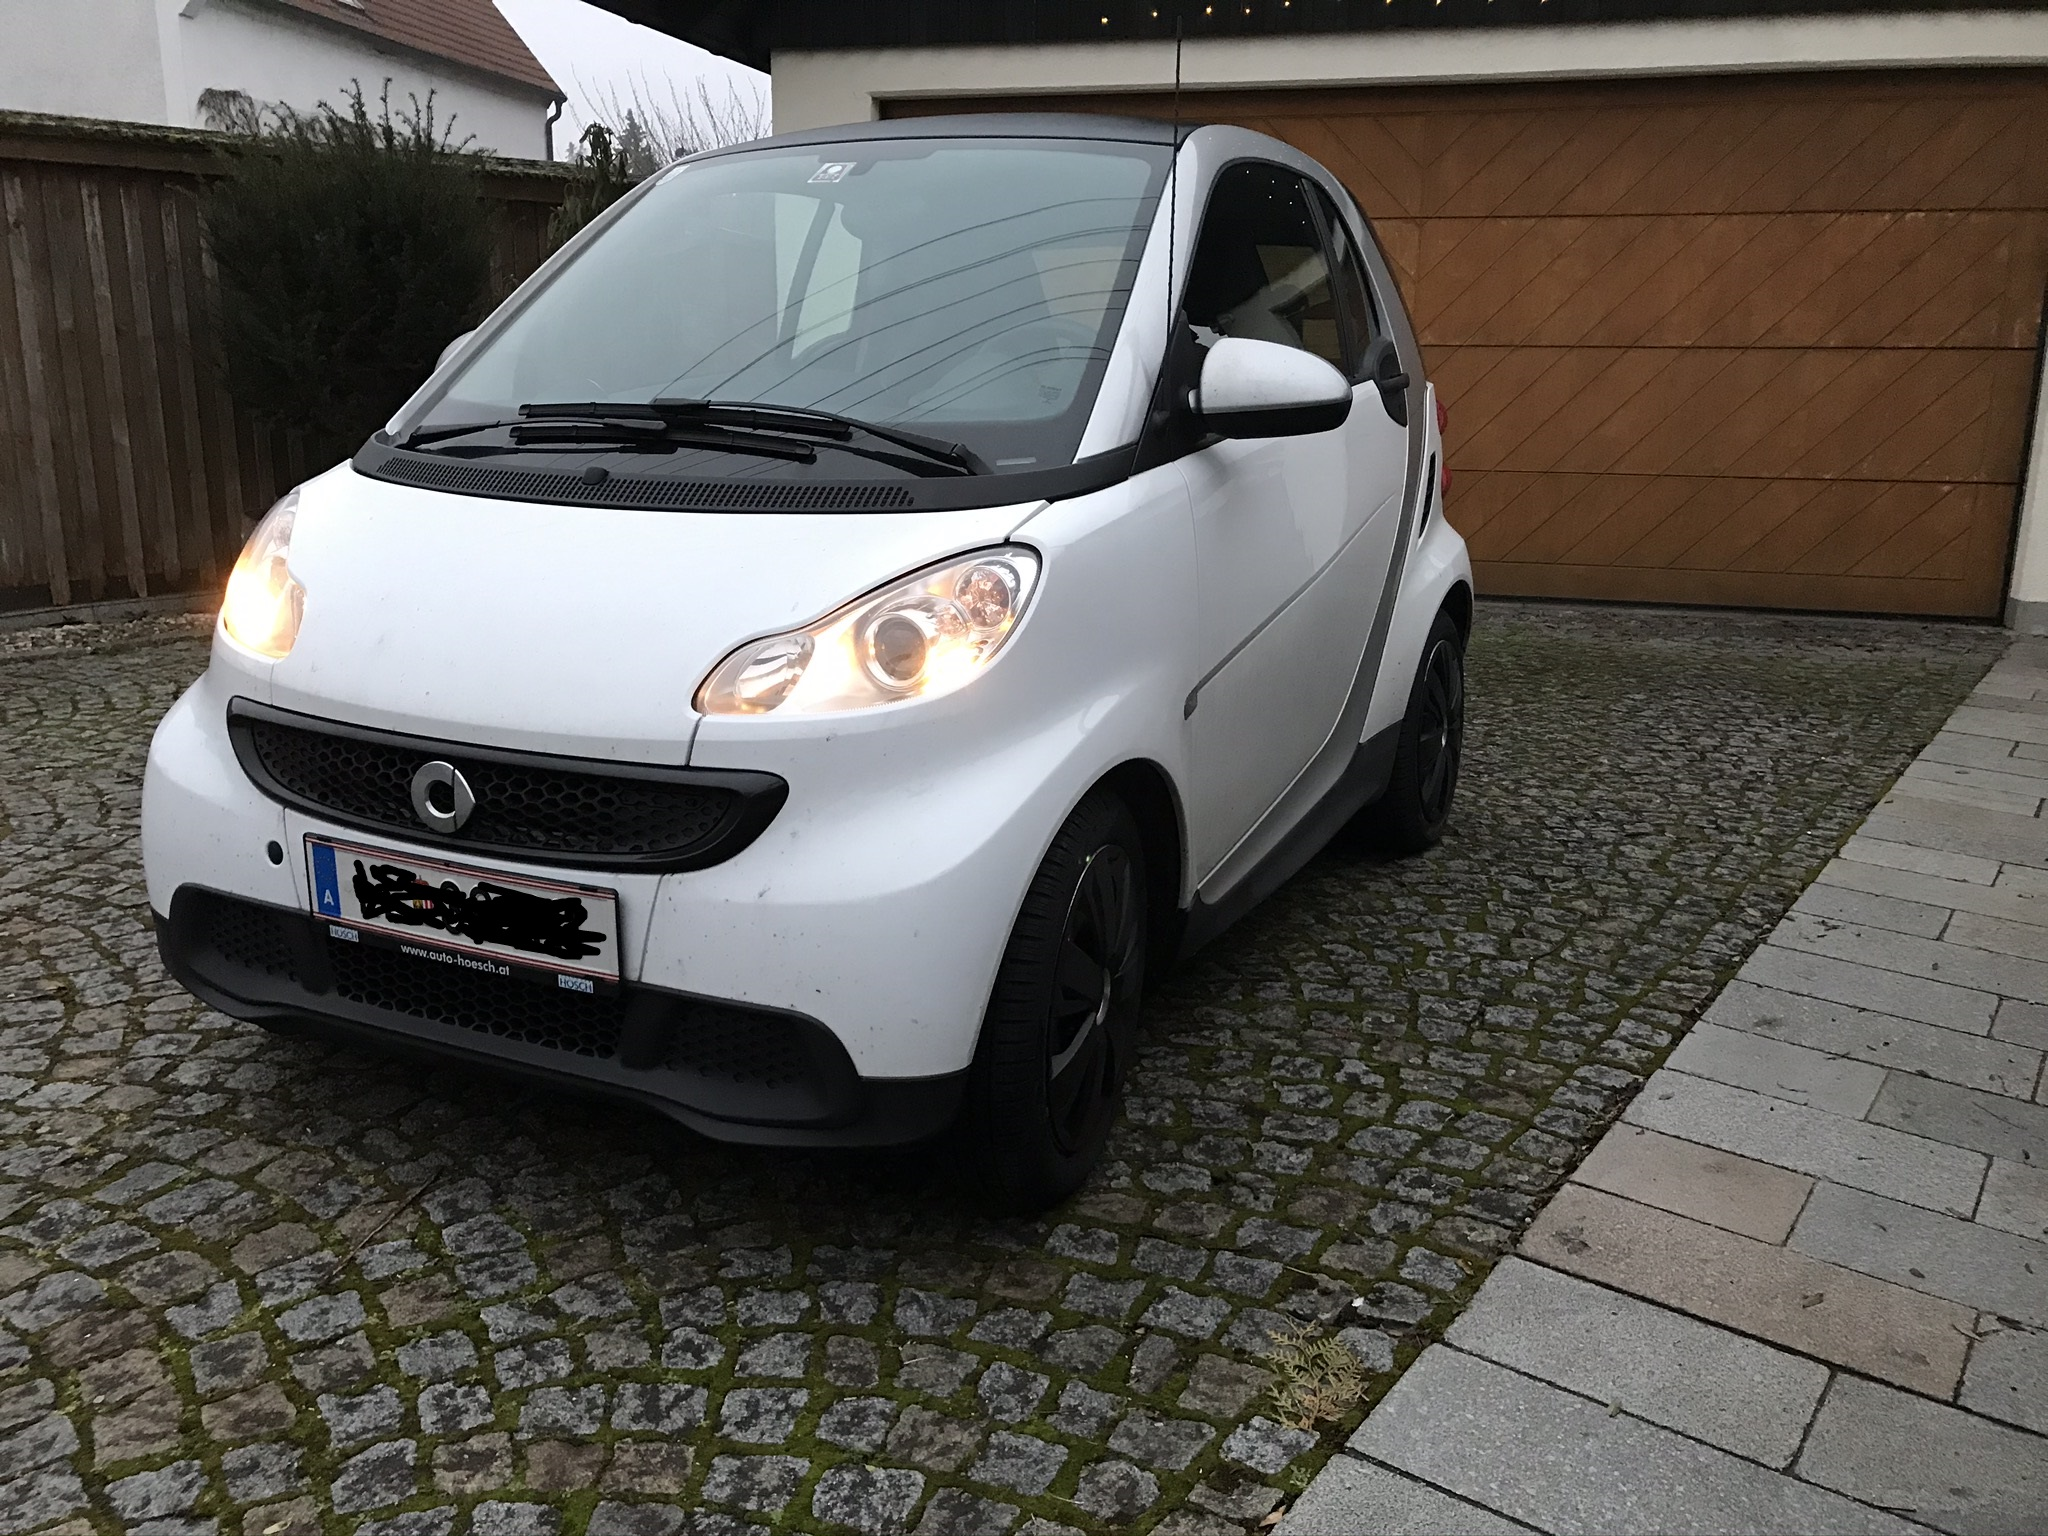 Smart Fortwo - € 5300